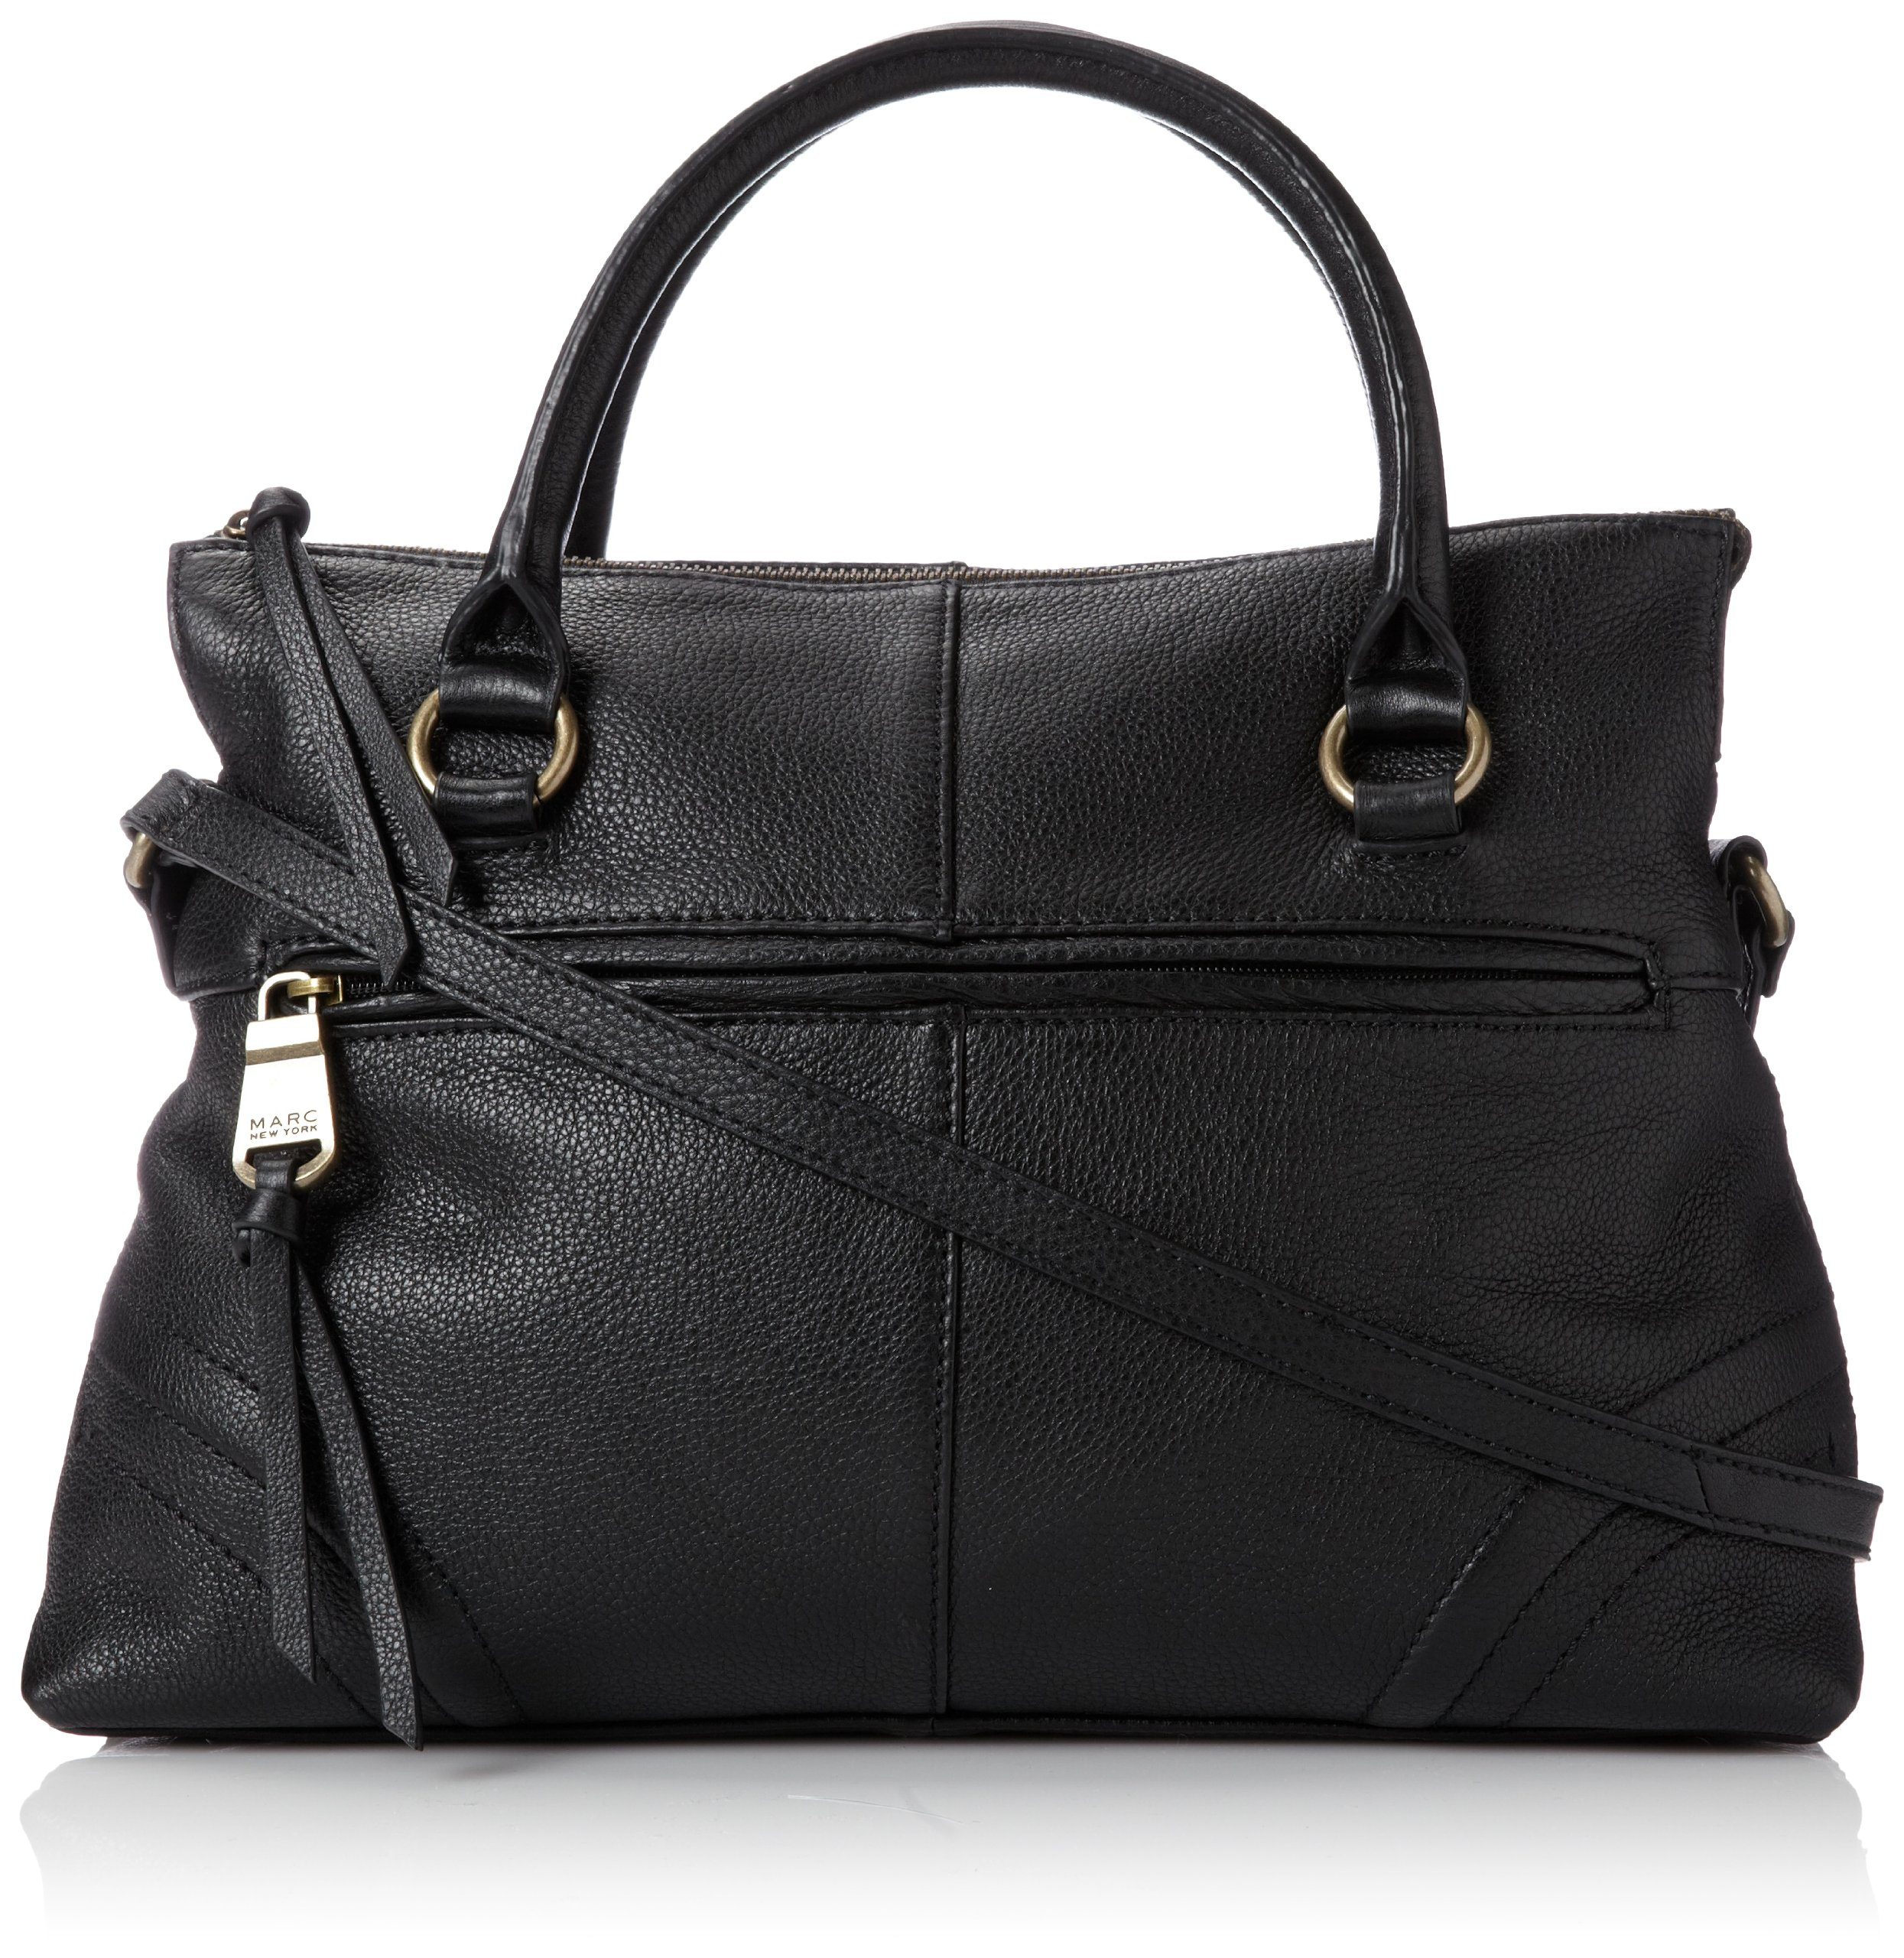 Marc New York Tristen HM3DA288 Top Handle Bag,Black,One Size by Marc New York by Andrew Marc